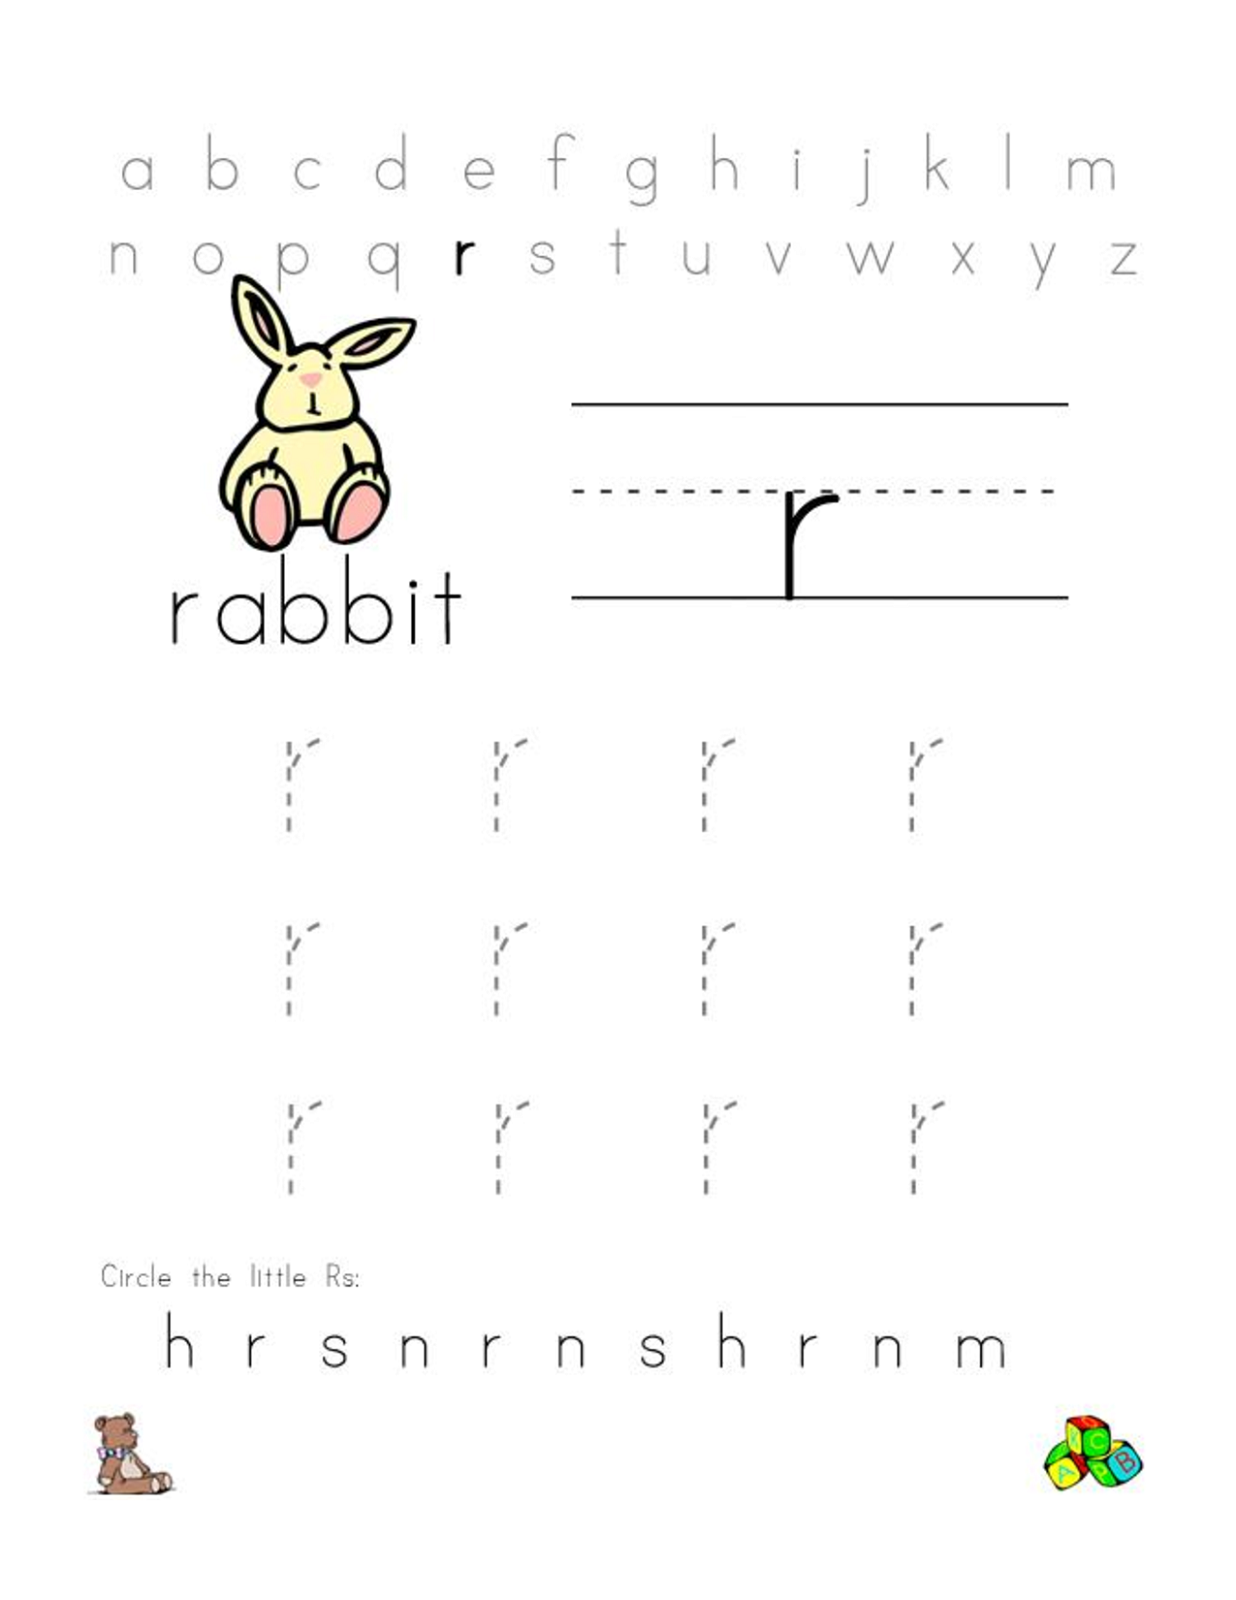 Free Alphabet Worksheets for the Beginners | Kiddo Shelter ...